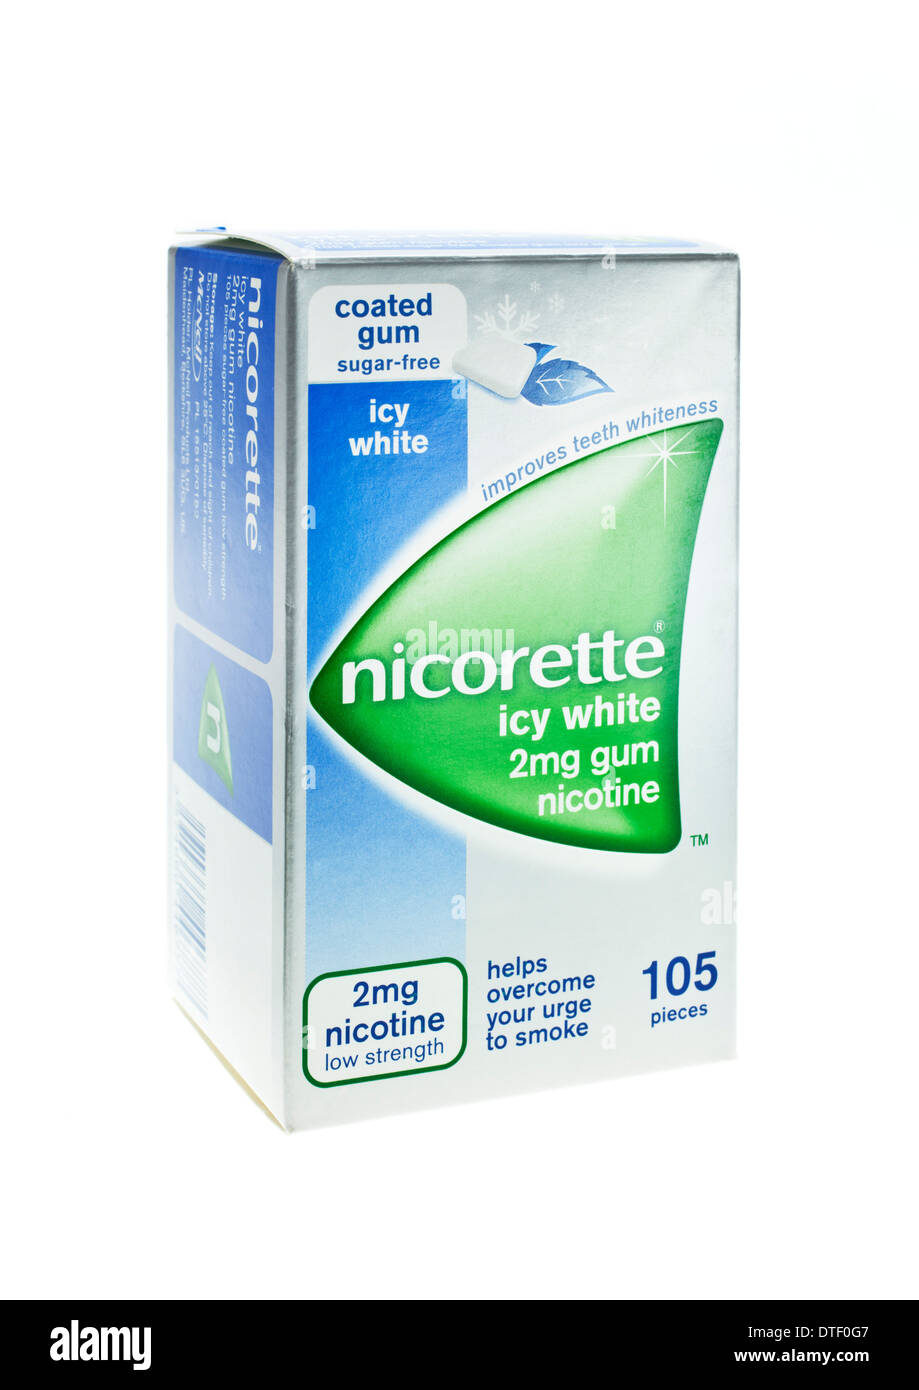 Nicorette chewing gum box nicotine replacement treatment on white background - Stock Image